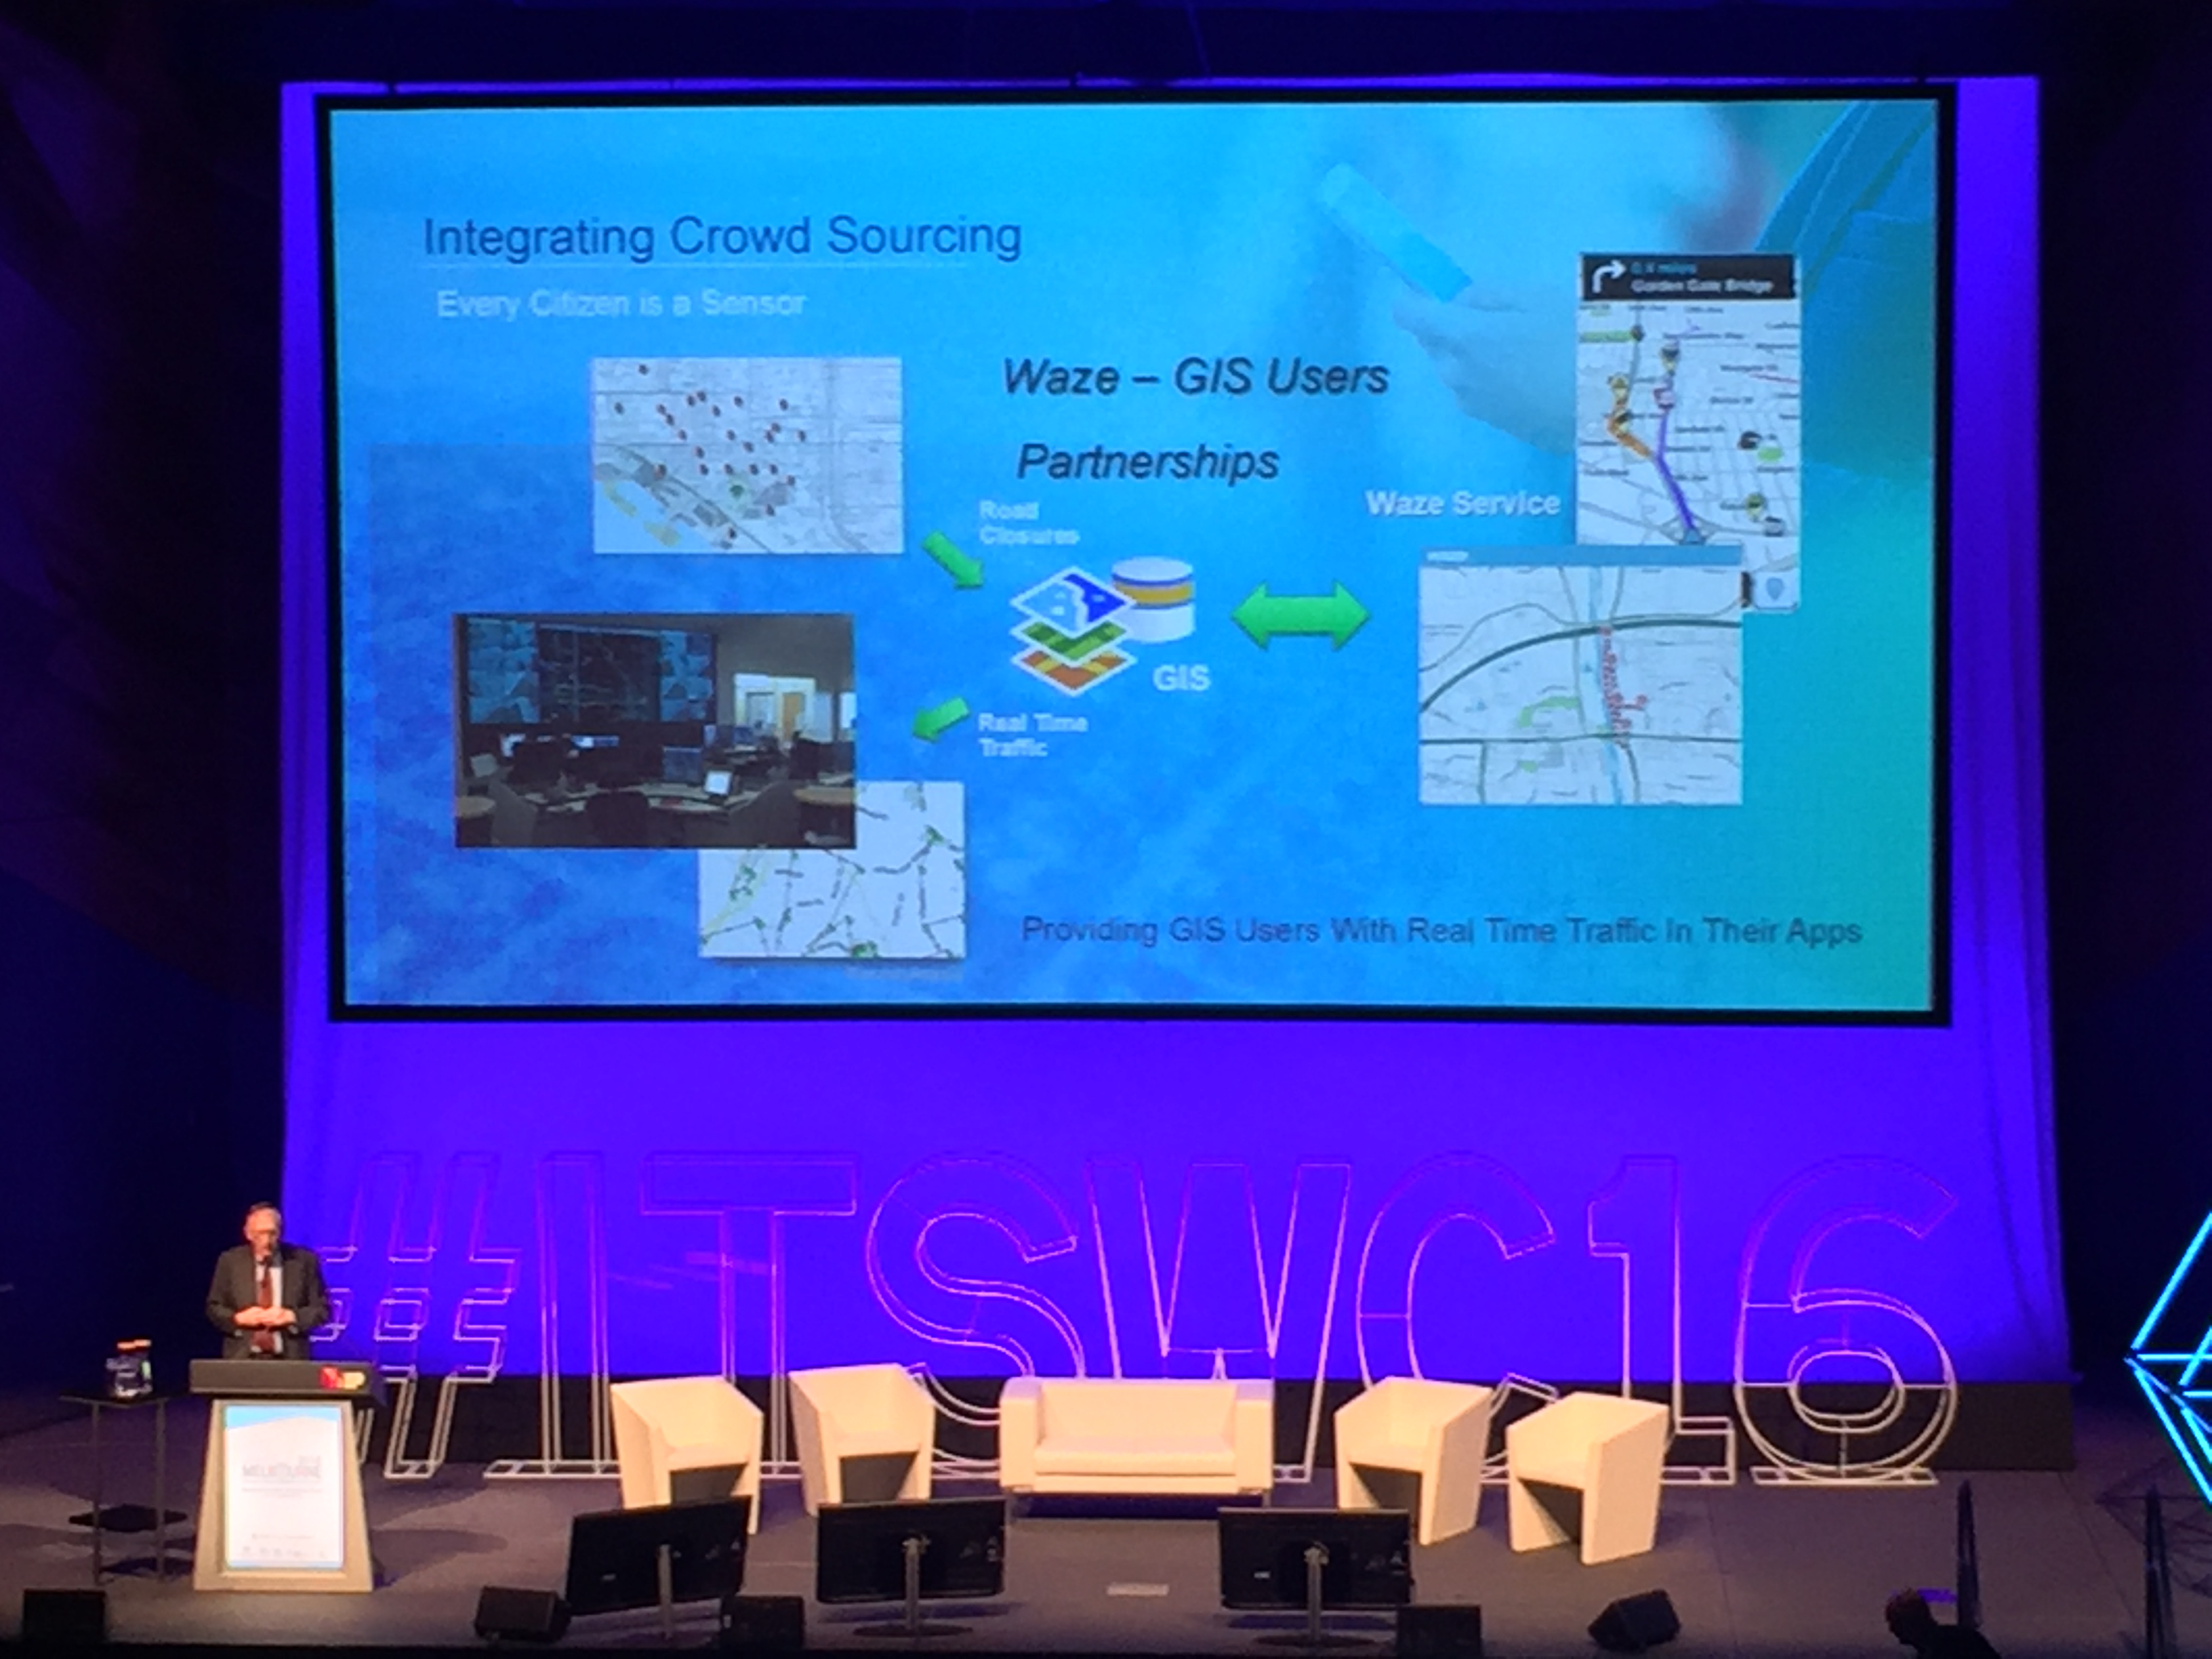 Integrating Waze with ArcGIS through the Connected Citizens